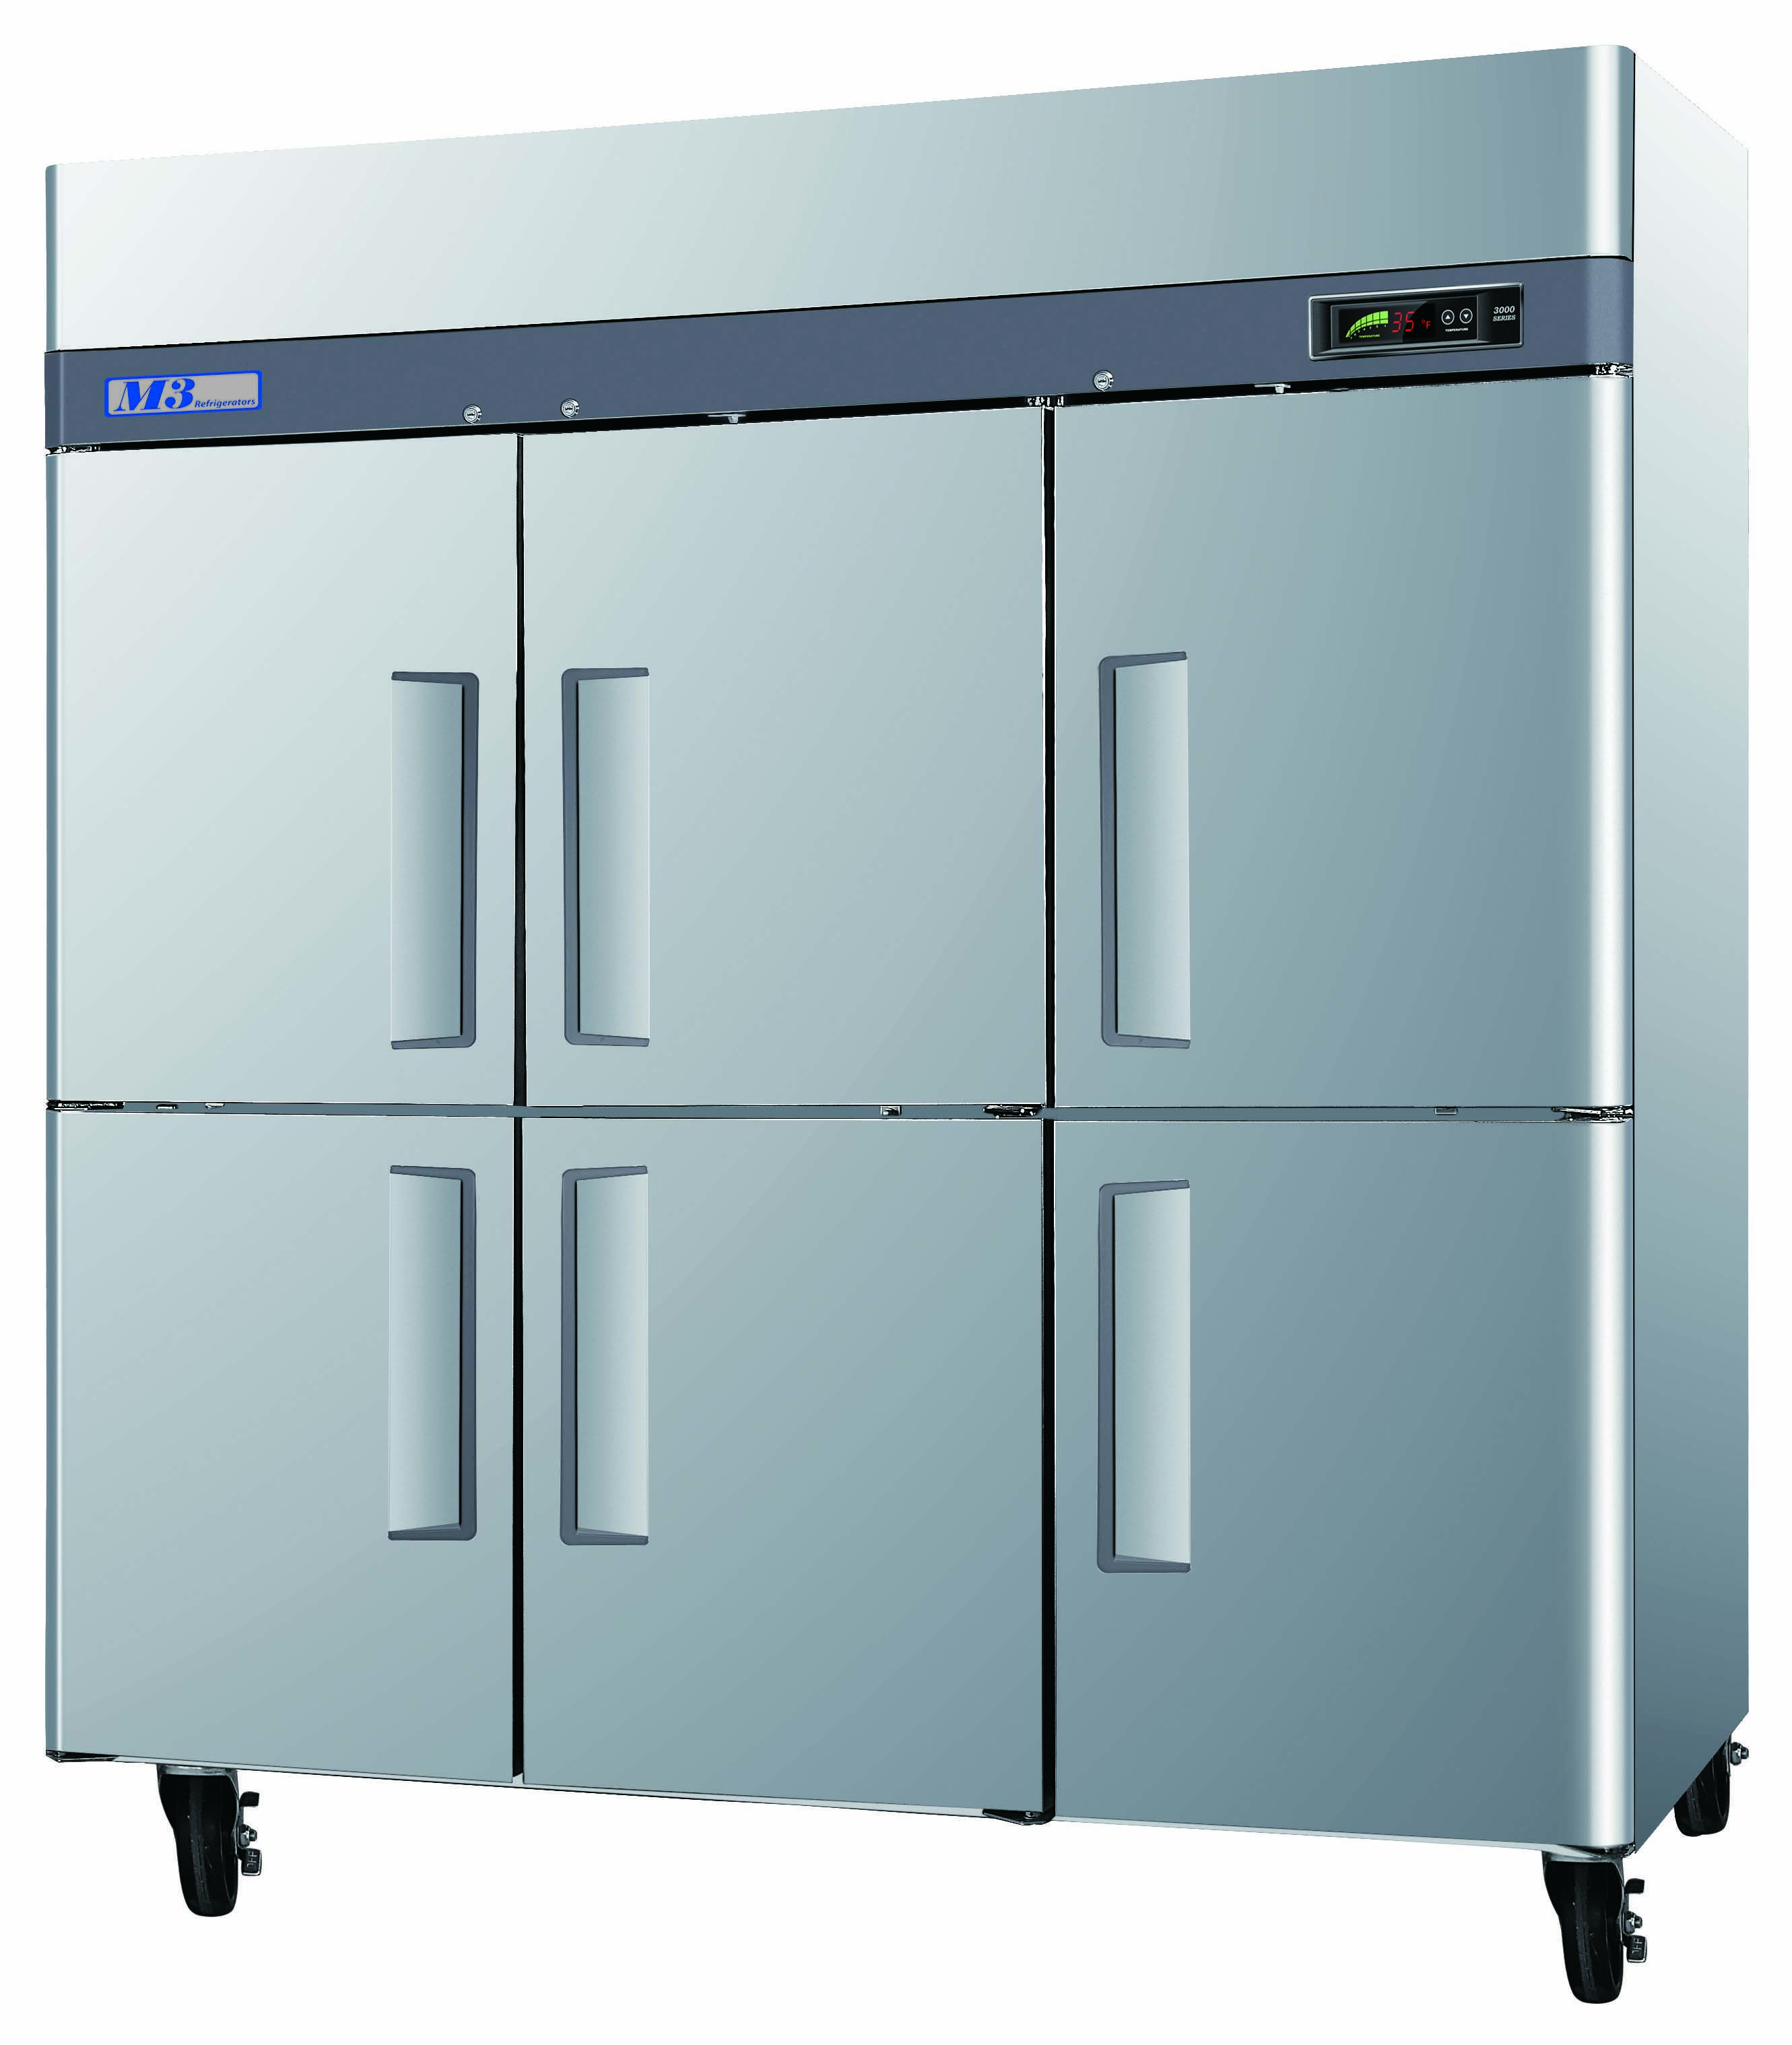 72 Cu Ft 6 Doors Available For Freezer And Refrigeration 72 Pies Cubicos 6 Puertas Disponible En Congelacion Half Doors Wire Shelving Locker Storage